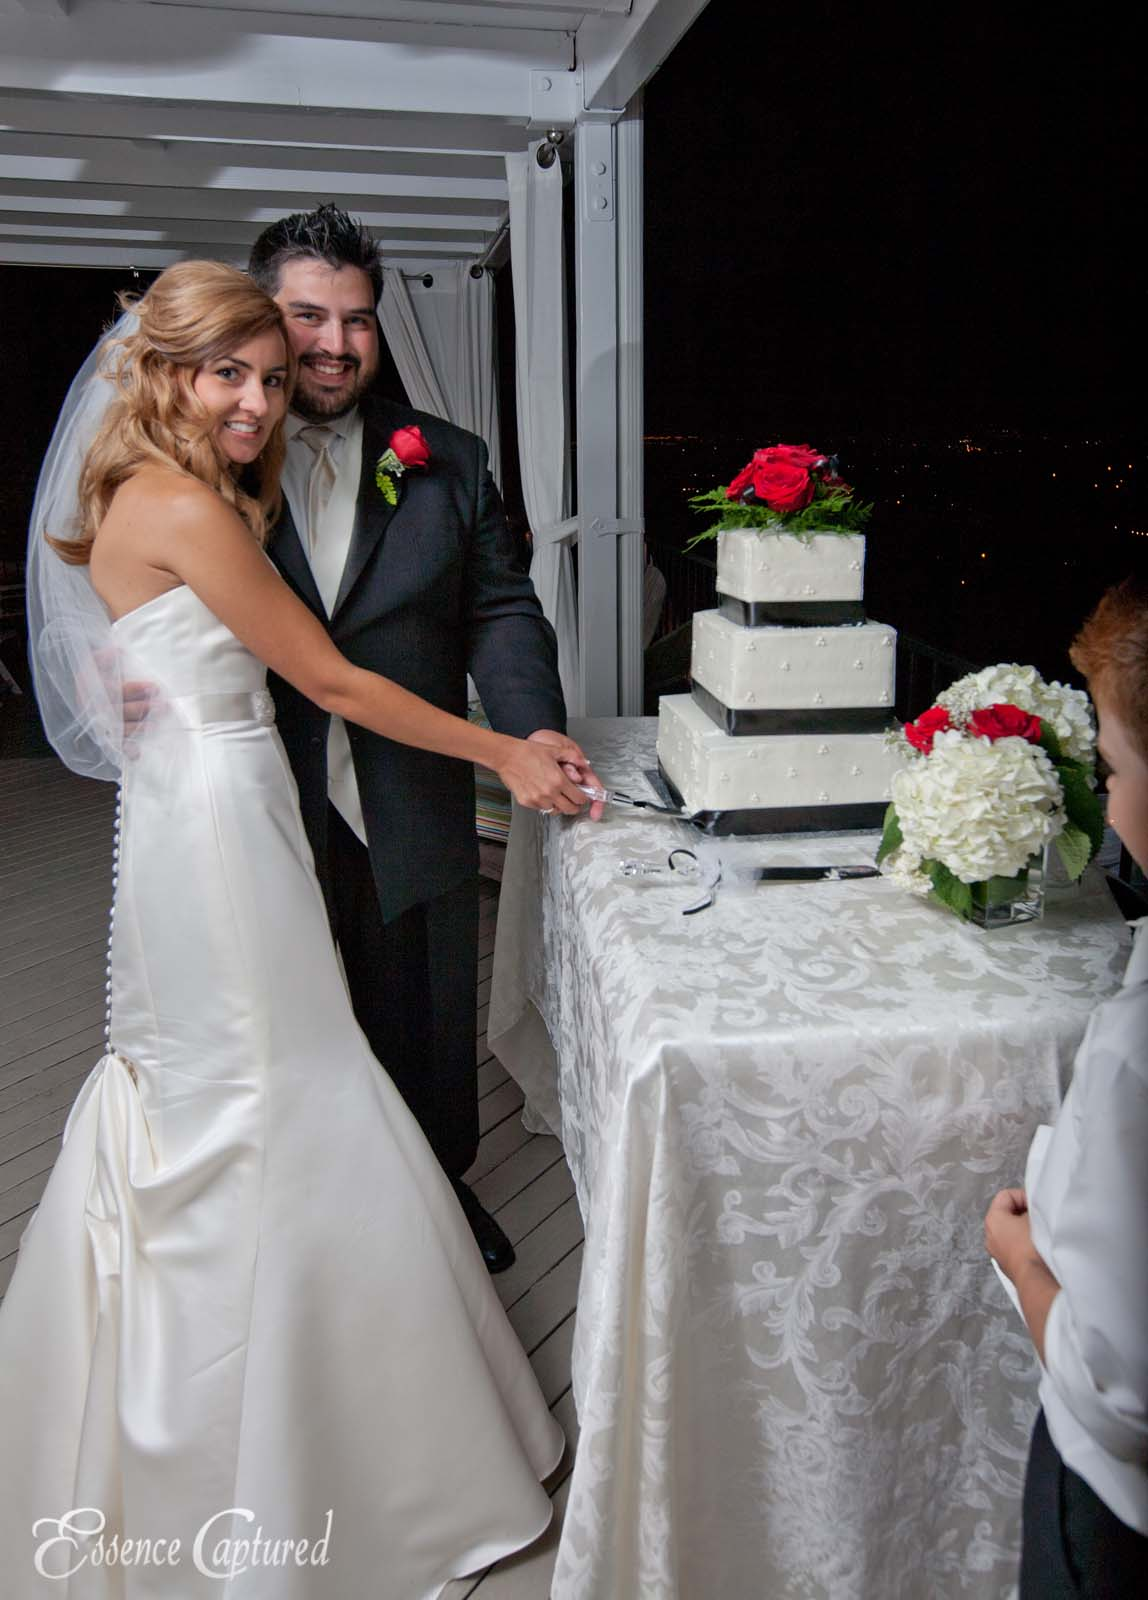 bride and groom cut the cake at wedding